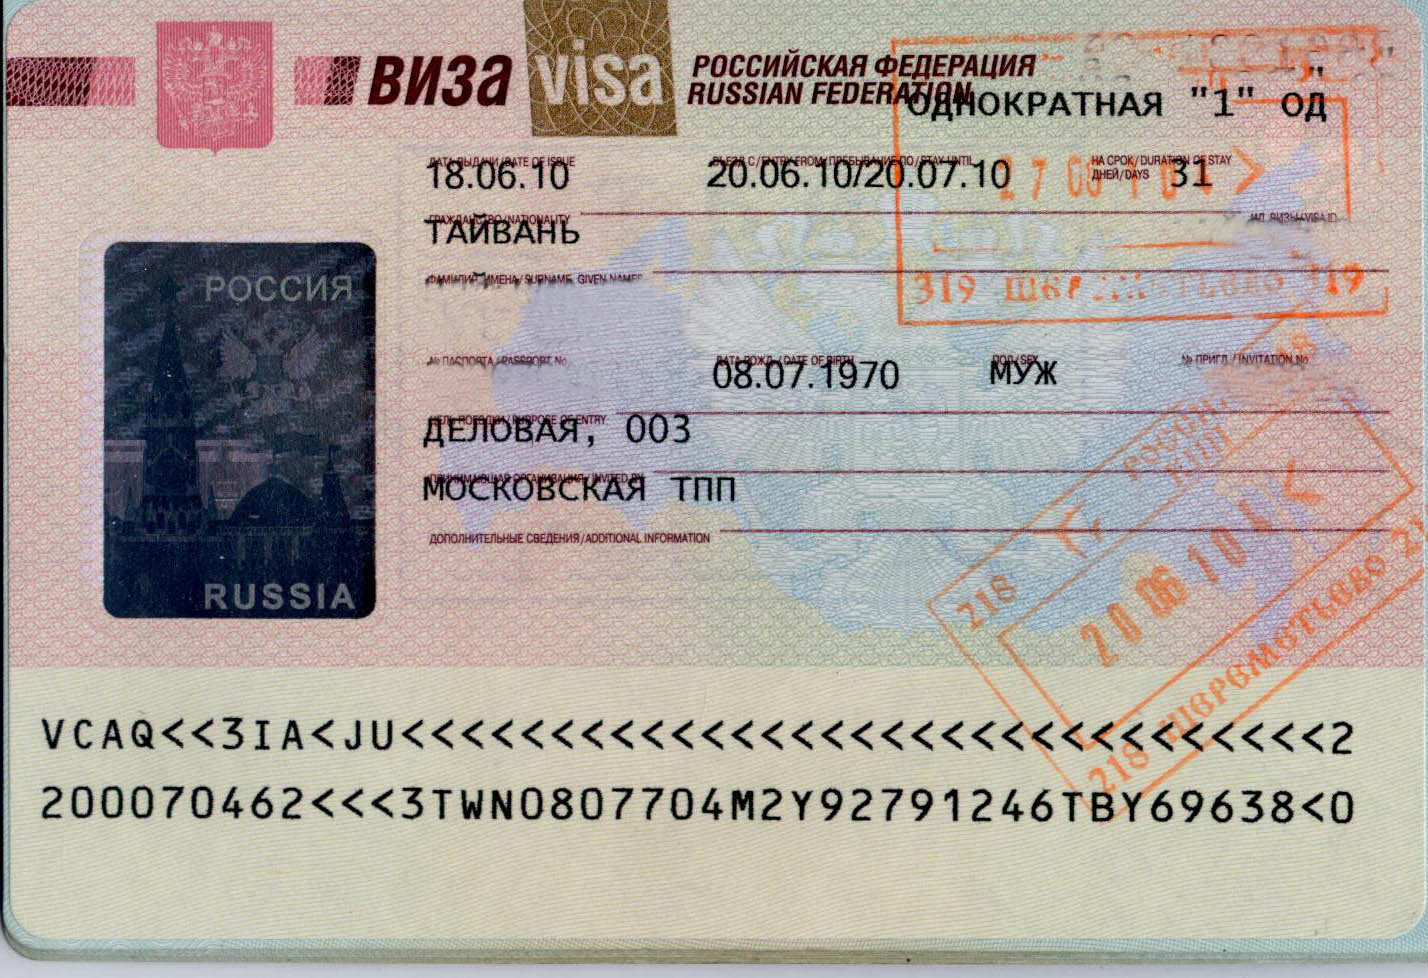 Issuance Of Multi Entry Visa And Registration At Place Of Residence Foreign Employees Foreign Employees Foreign Employees E Regulations